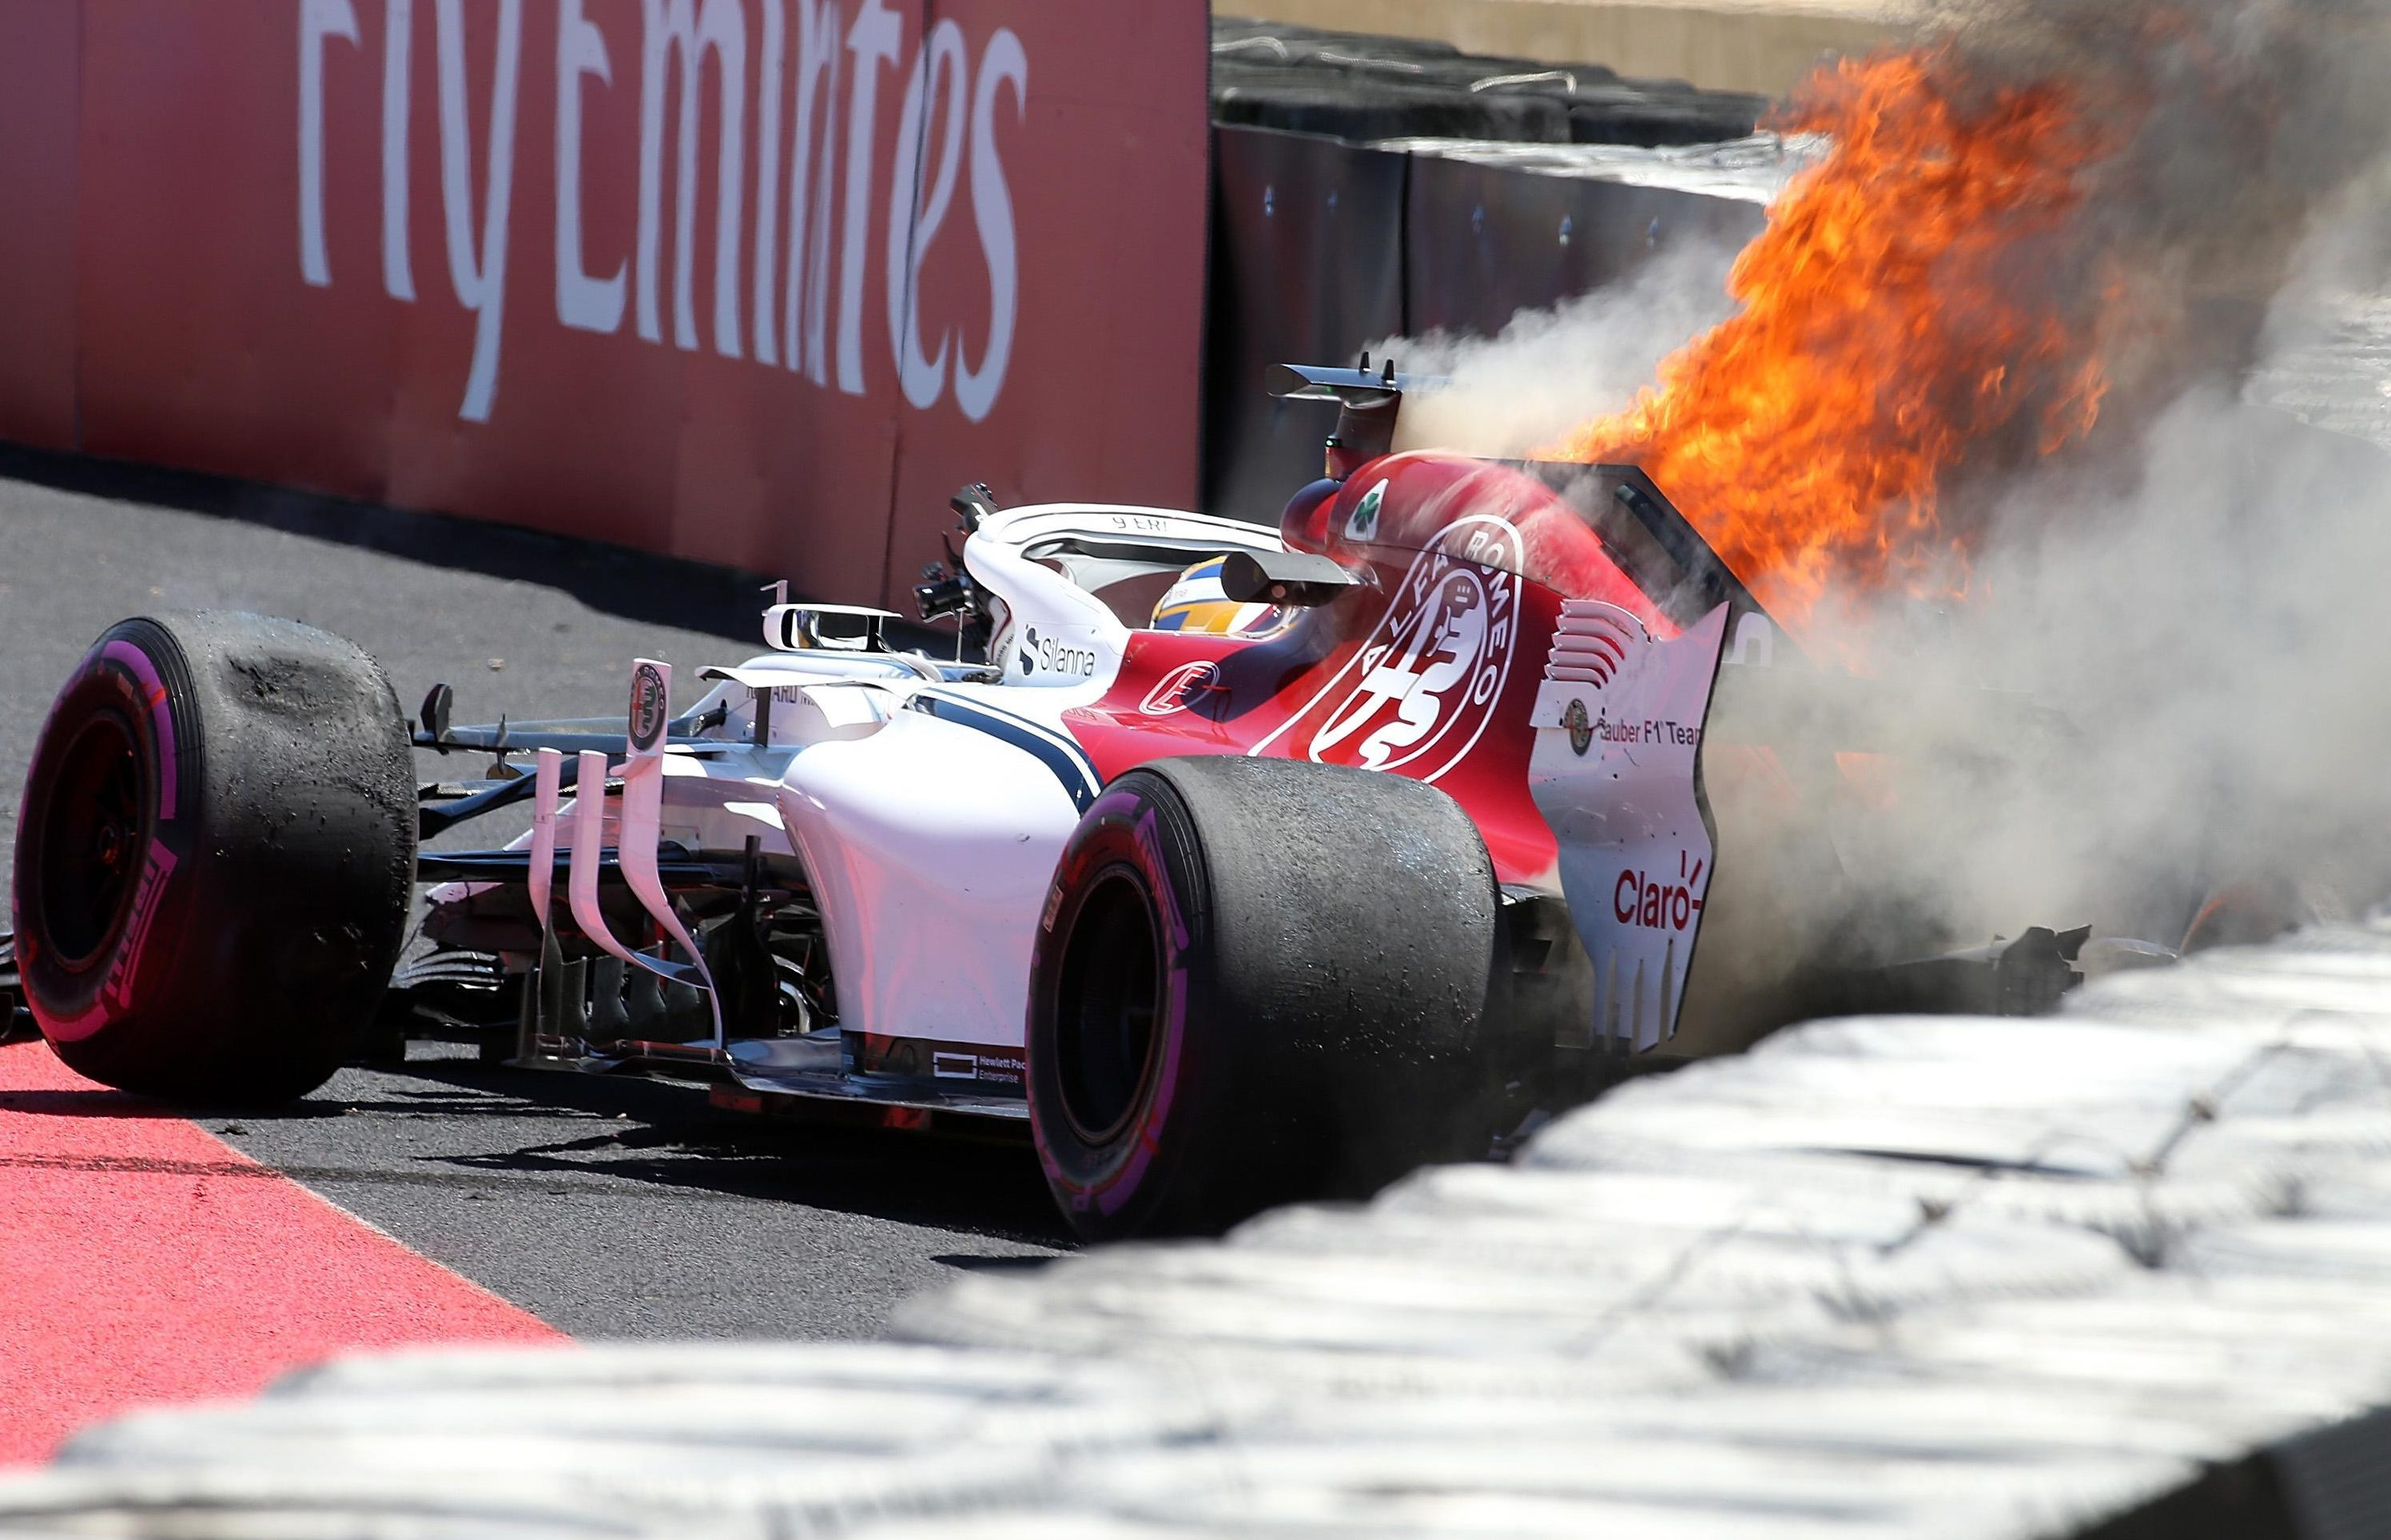 Marcus Ericsson crashed with three minutes of the practice session left